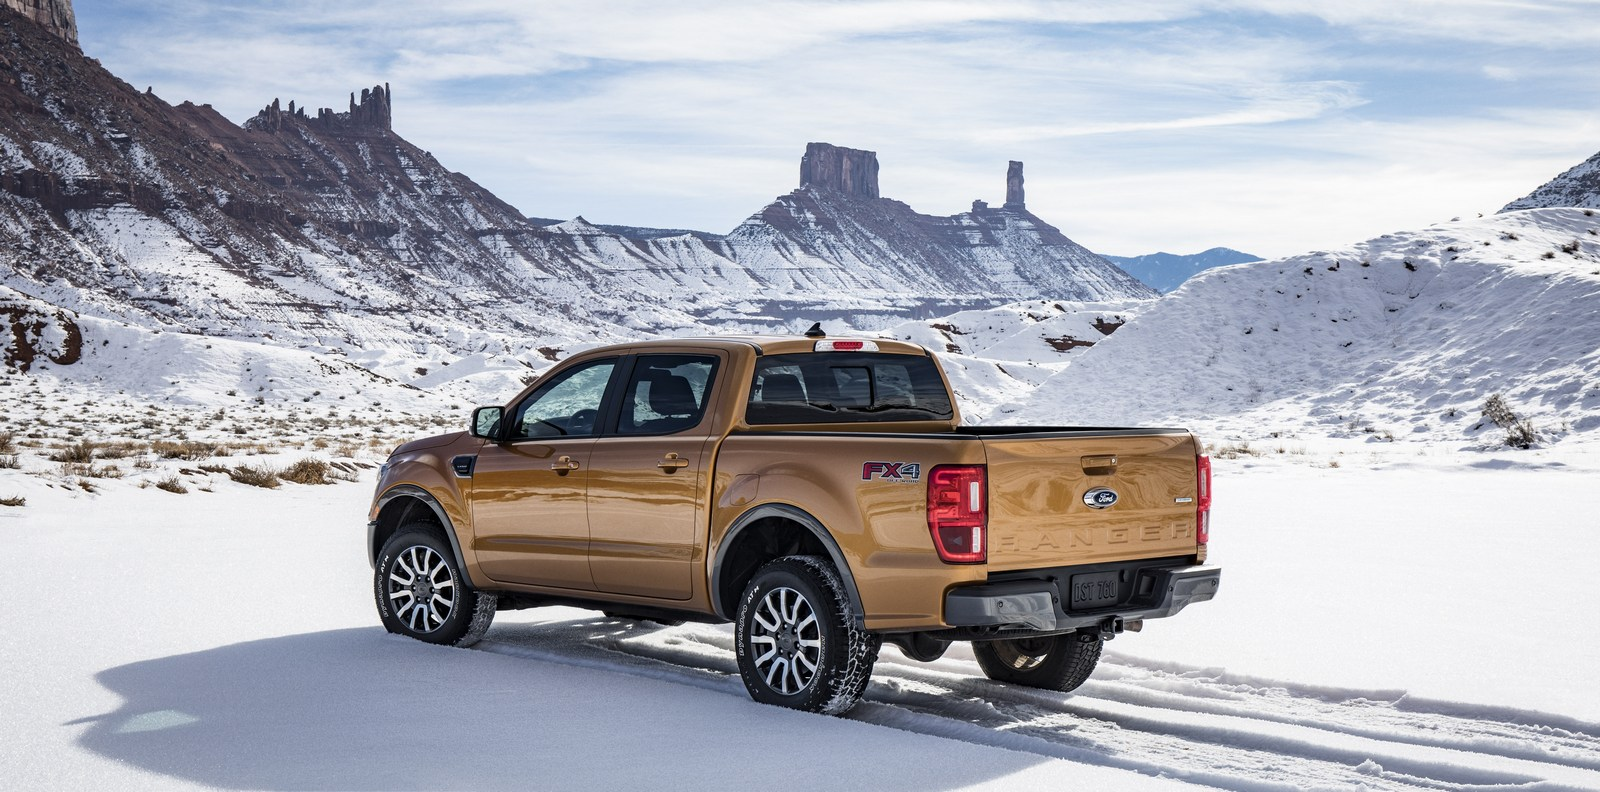 2019 Ford Ranger Raptor U S Model All But Confirmed By Design